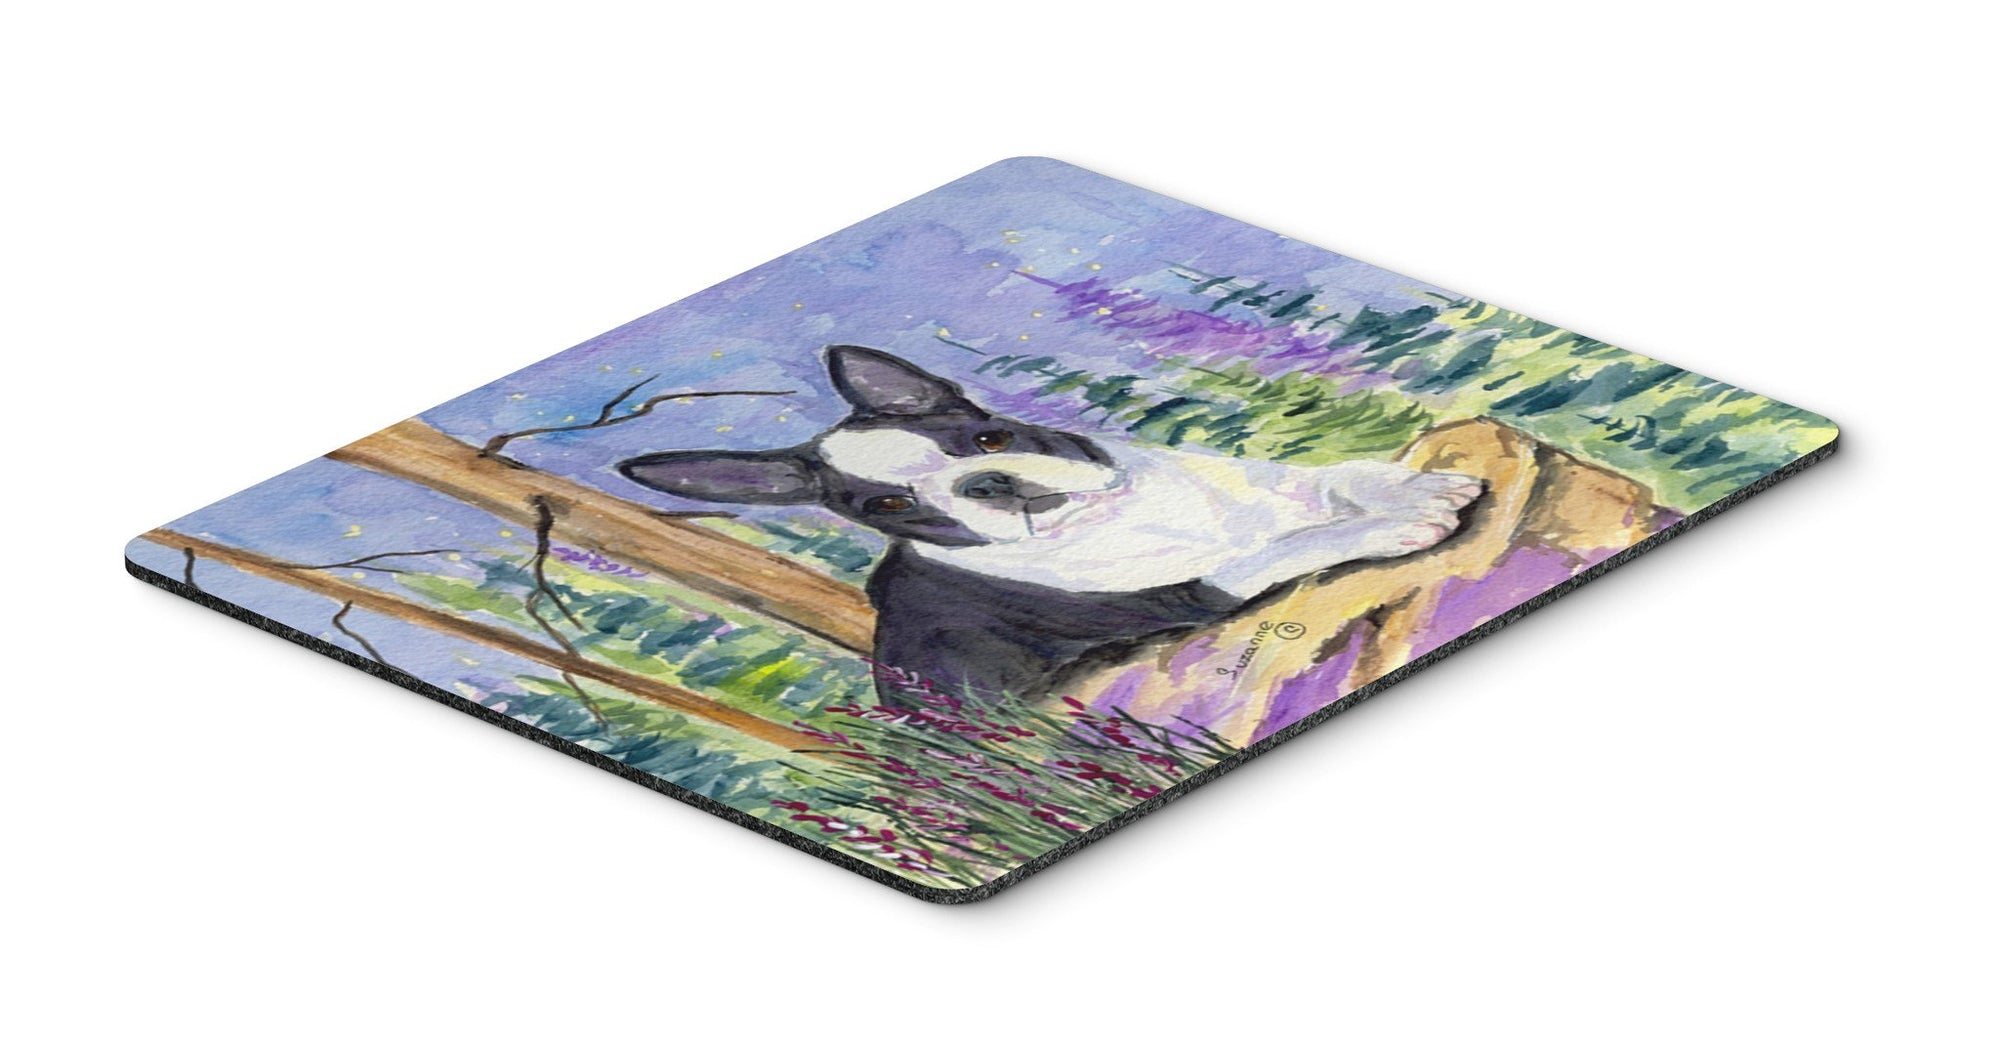 Boston Terrier Mouse pad, hot pad, or trivet by Caroline's Treasures